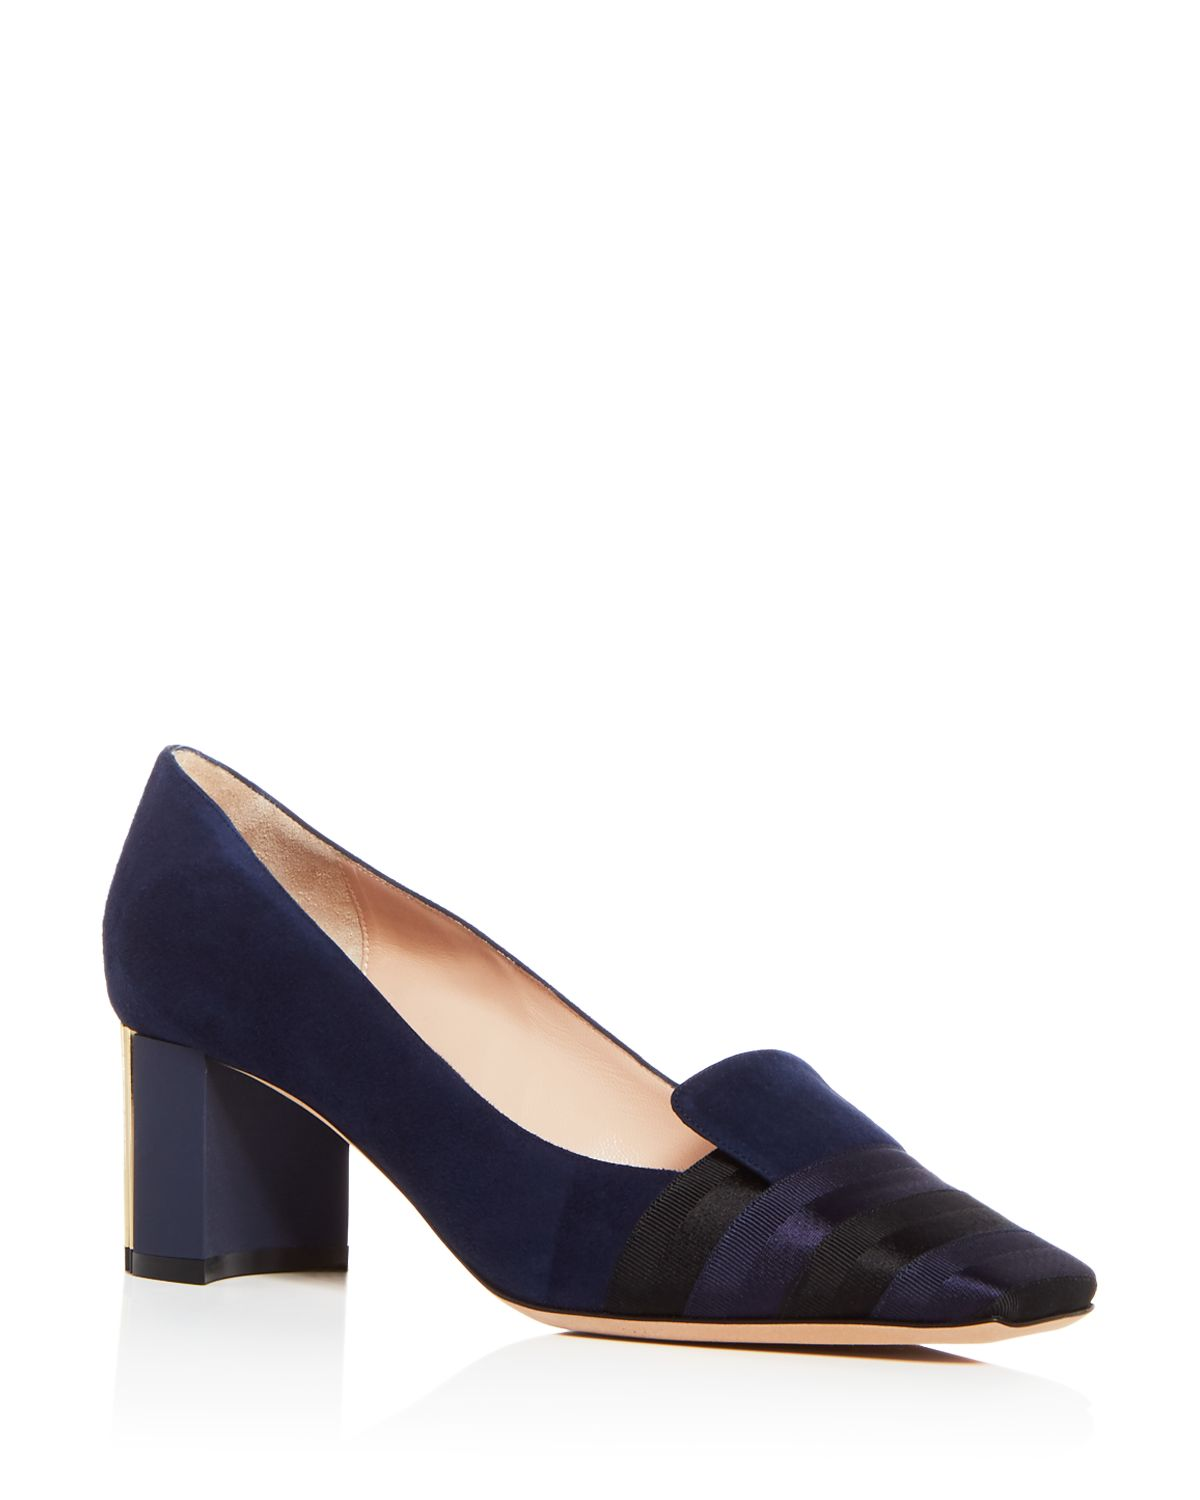 Armani Women's Decollete Suede & Satin Striped Block Heel Pumps